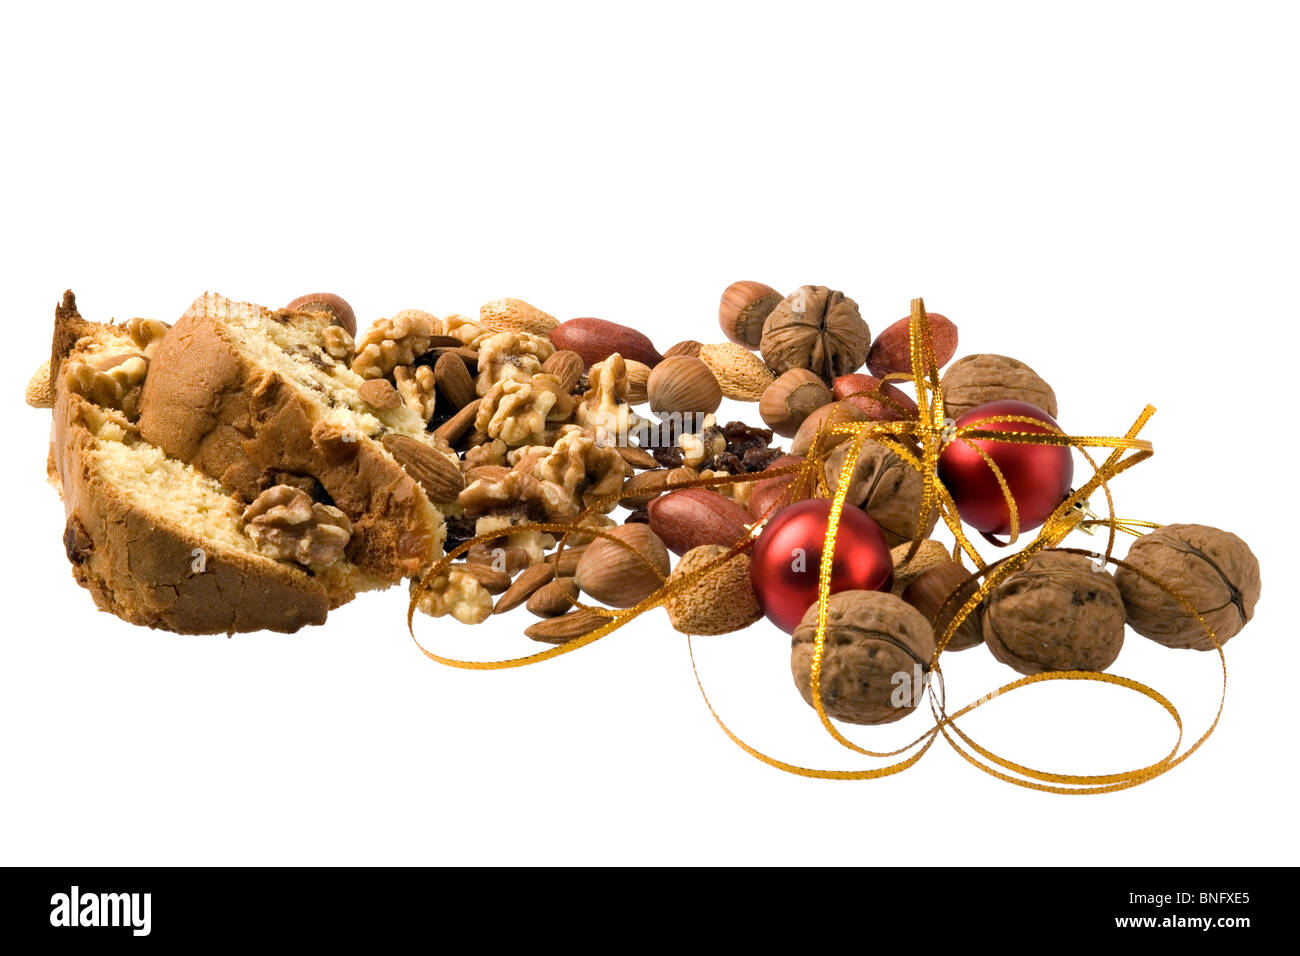 Pieces of christmas cake, nuts, and xmas decoration isolated against white. - Stock Image